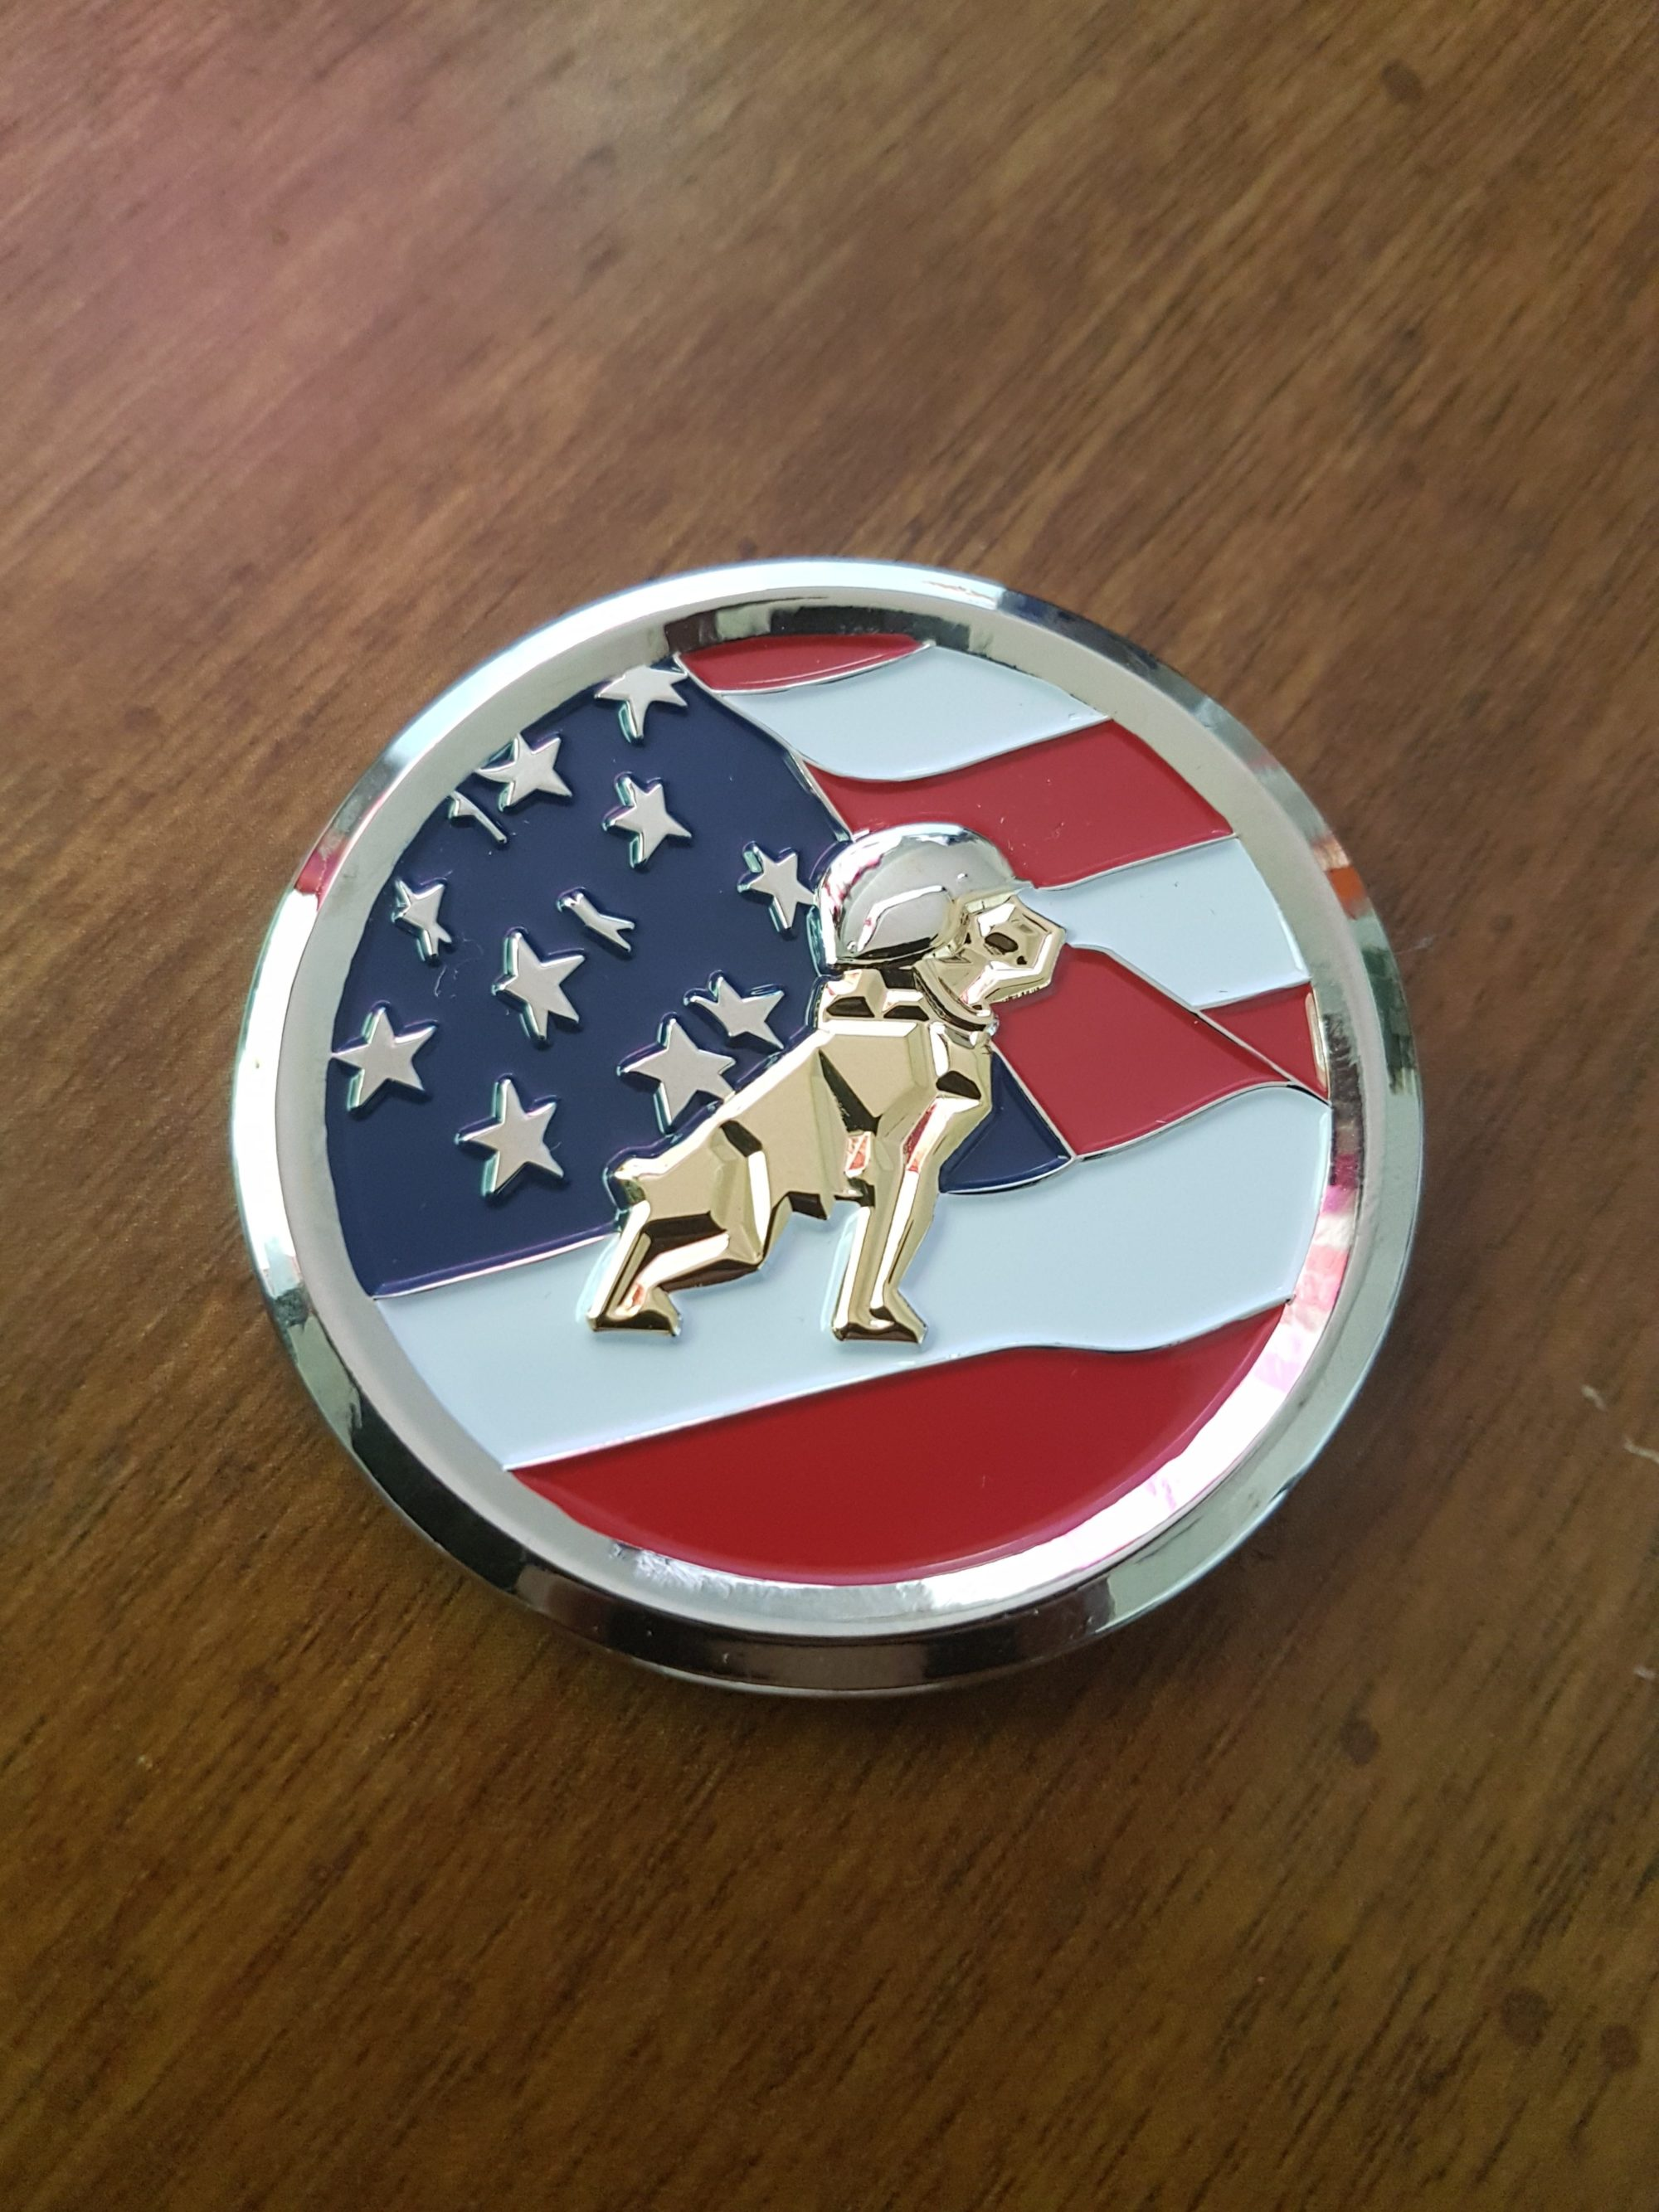 mack defense, mack defense coin, challenge coins, custom challenge coins